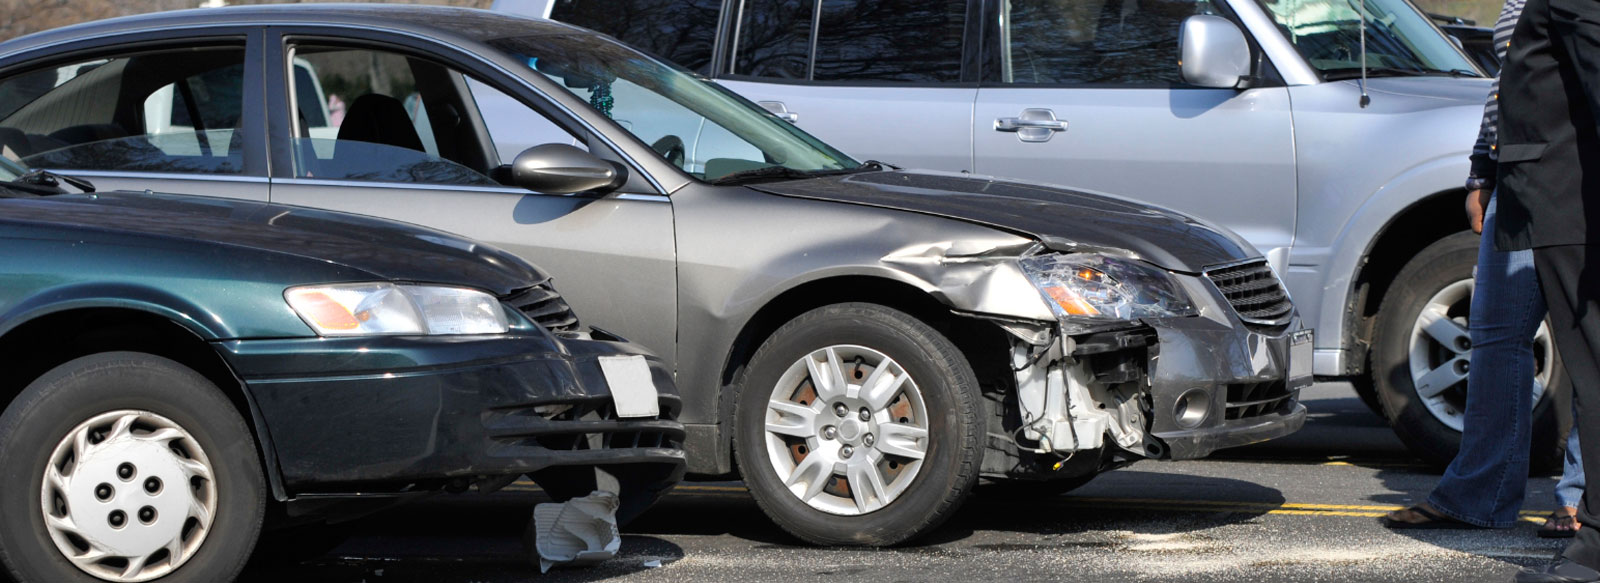 auto-insurance-claims-boston.jpg